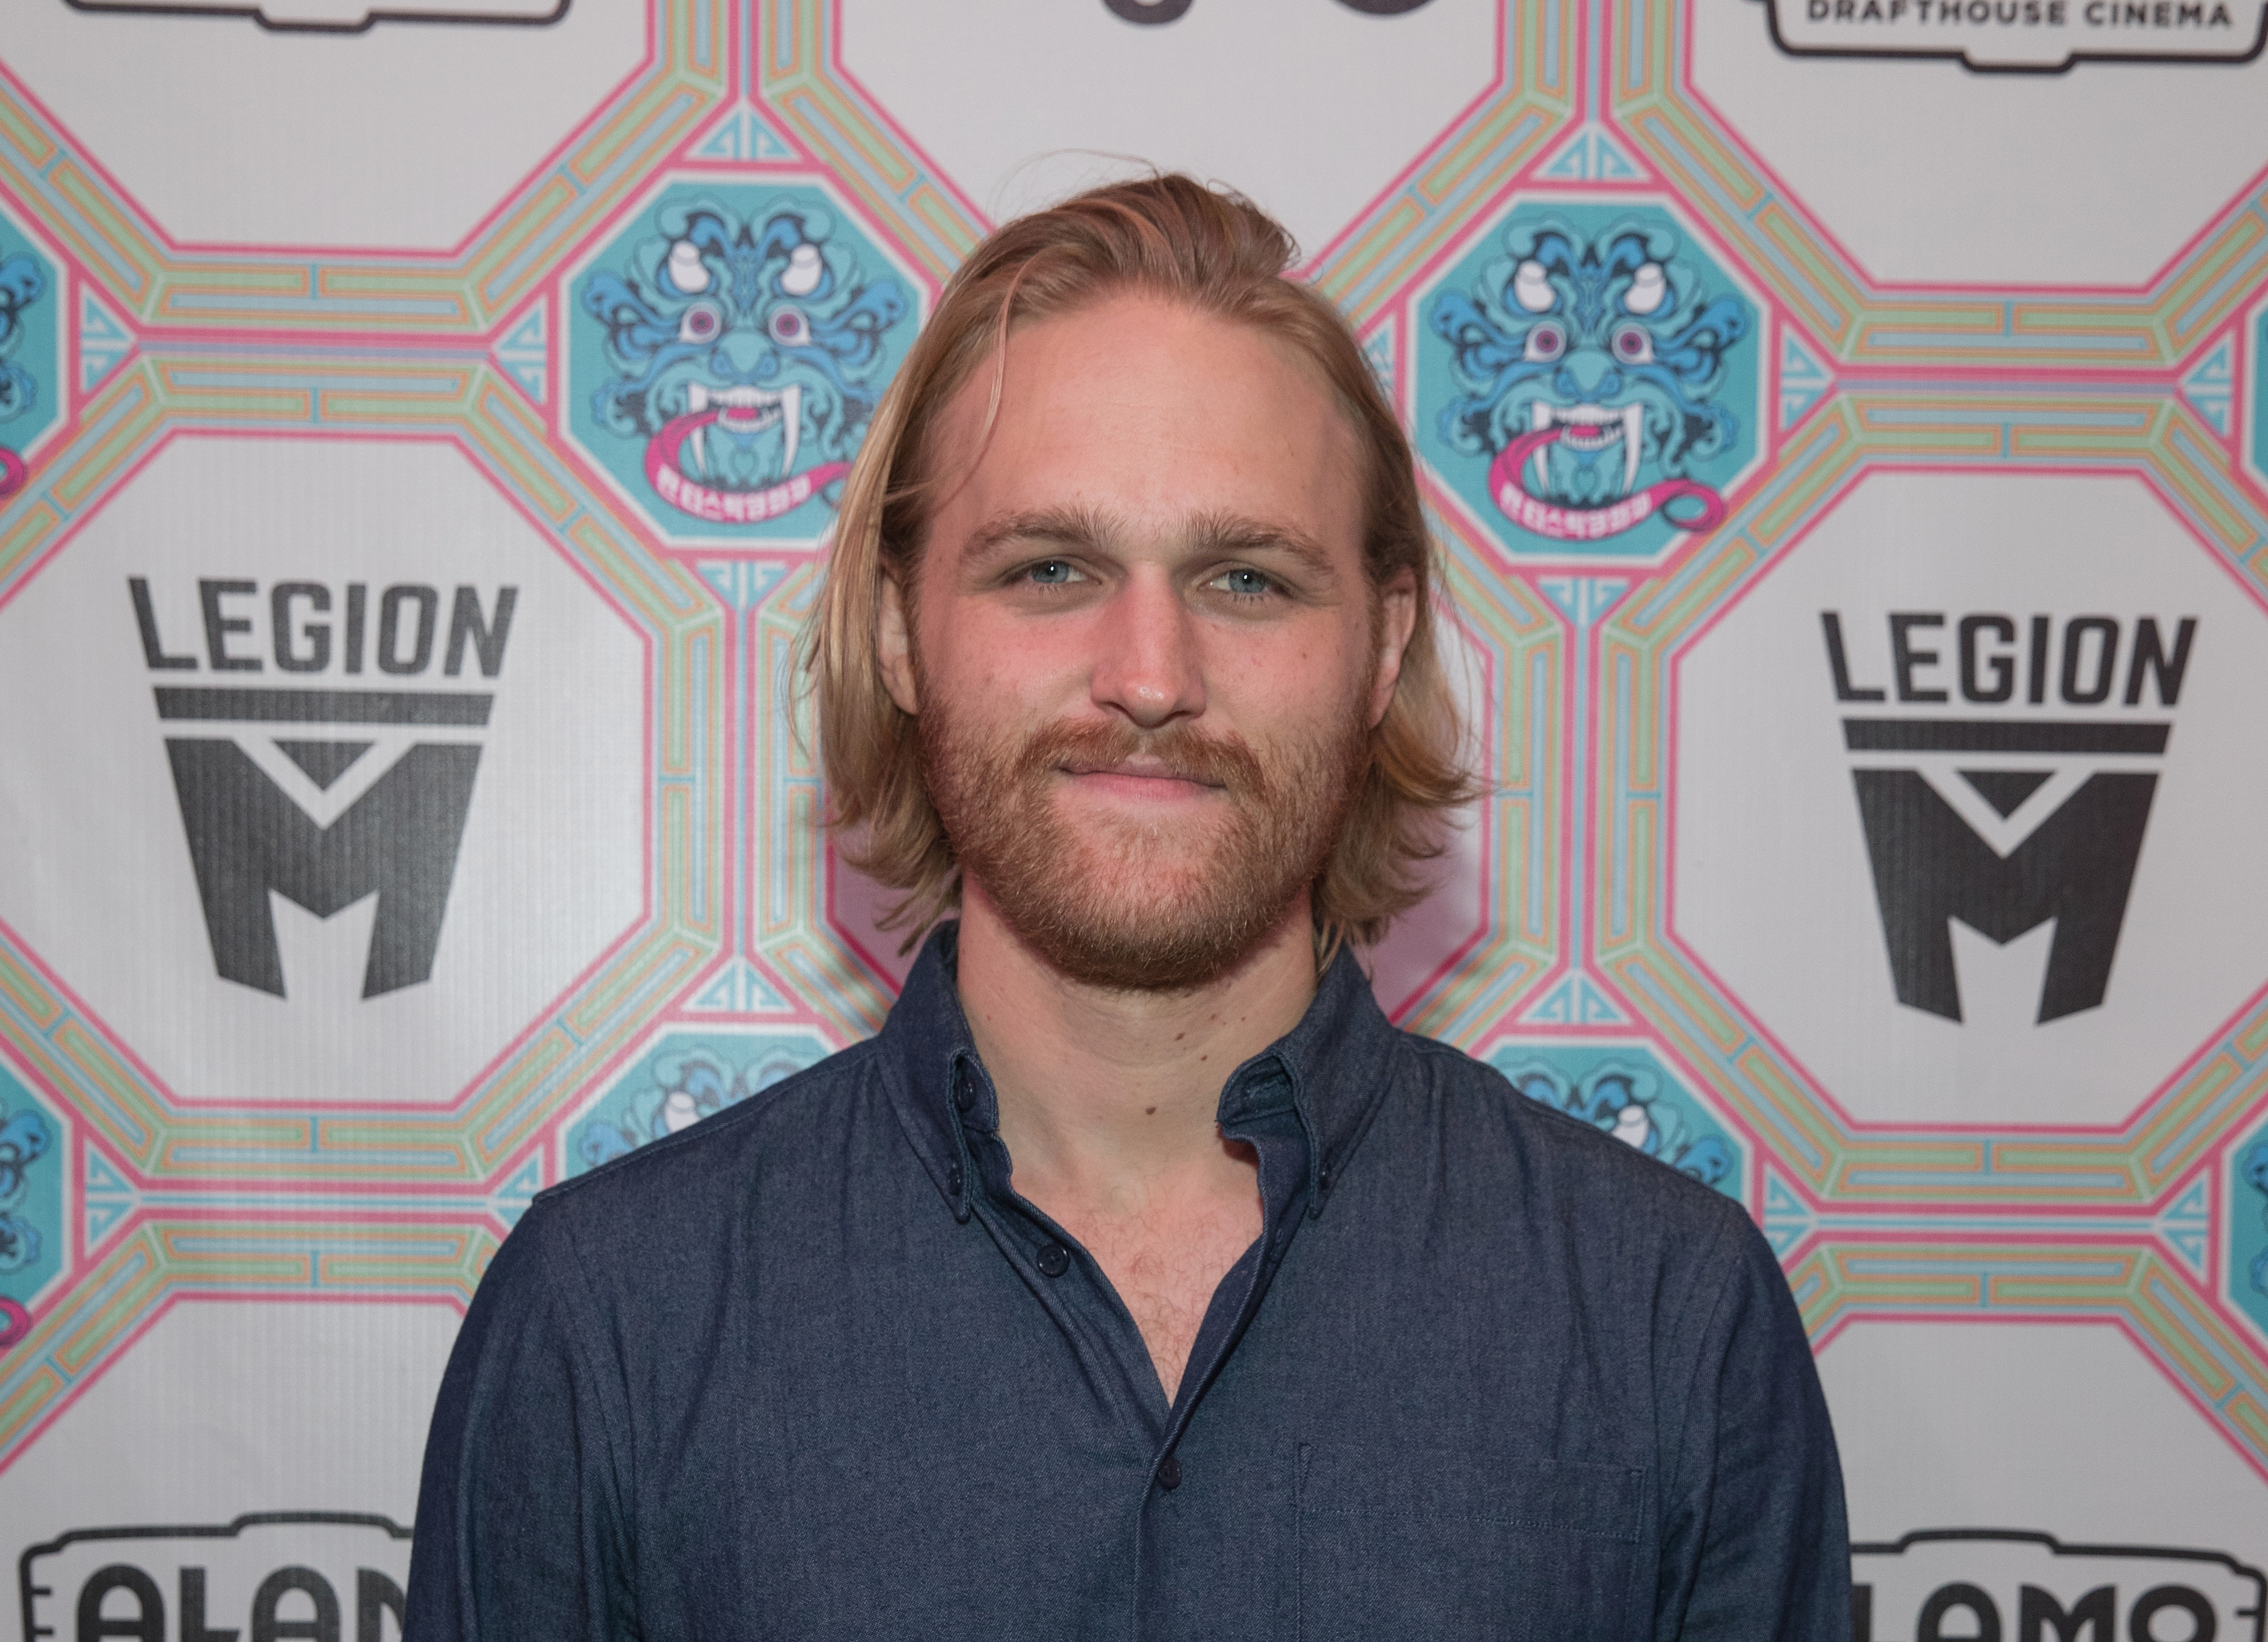 Wyatt Russell The Falcon and the Winter Soldier Capitán América